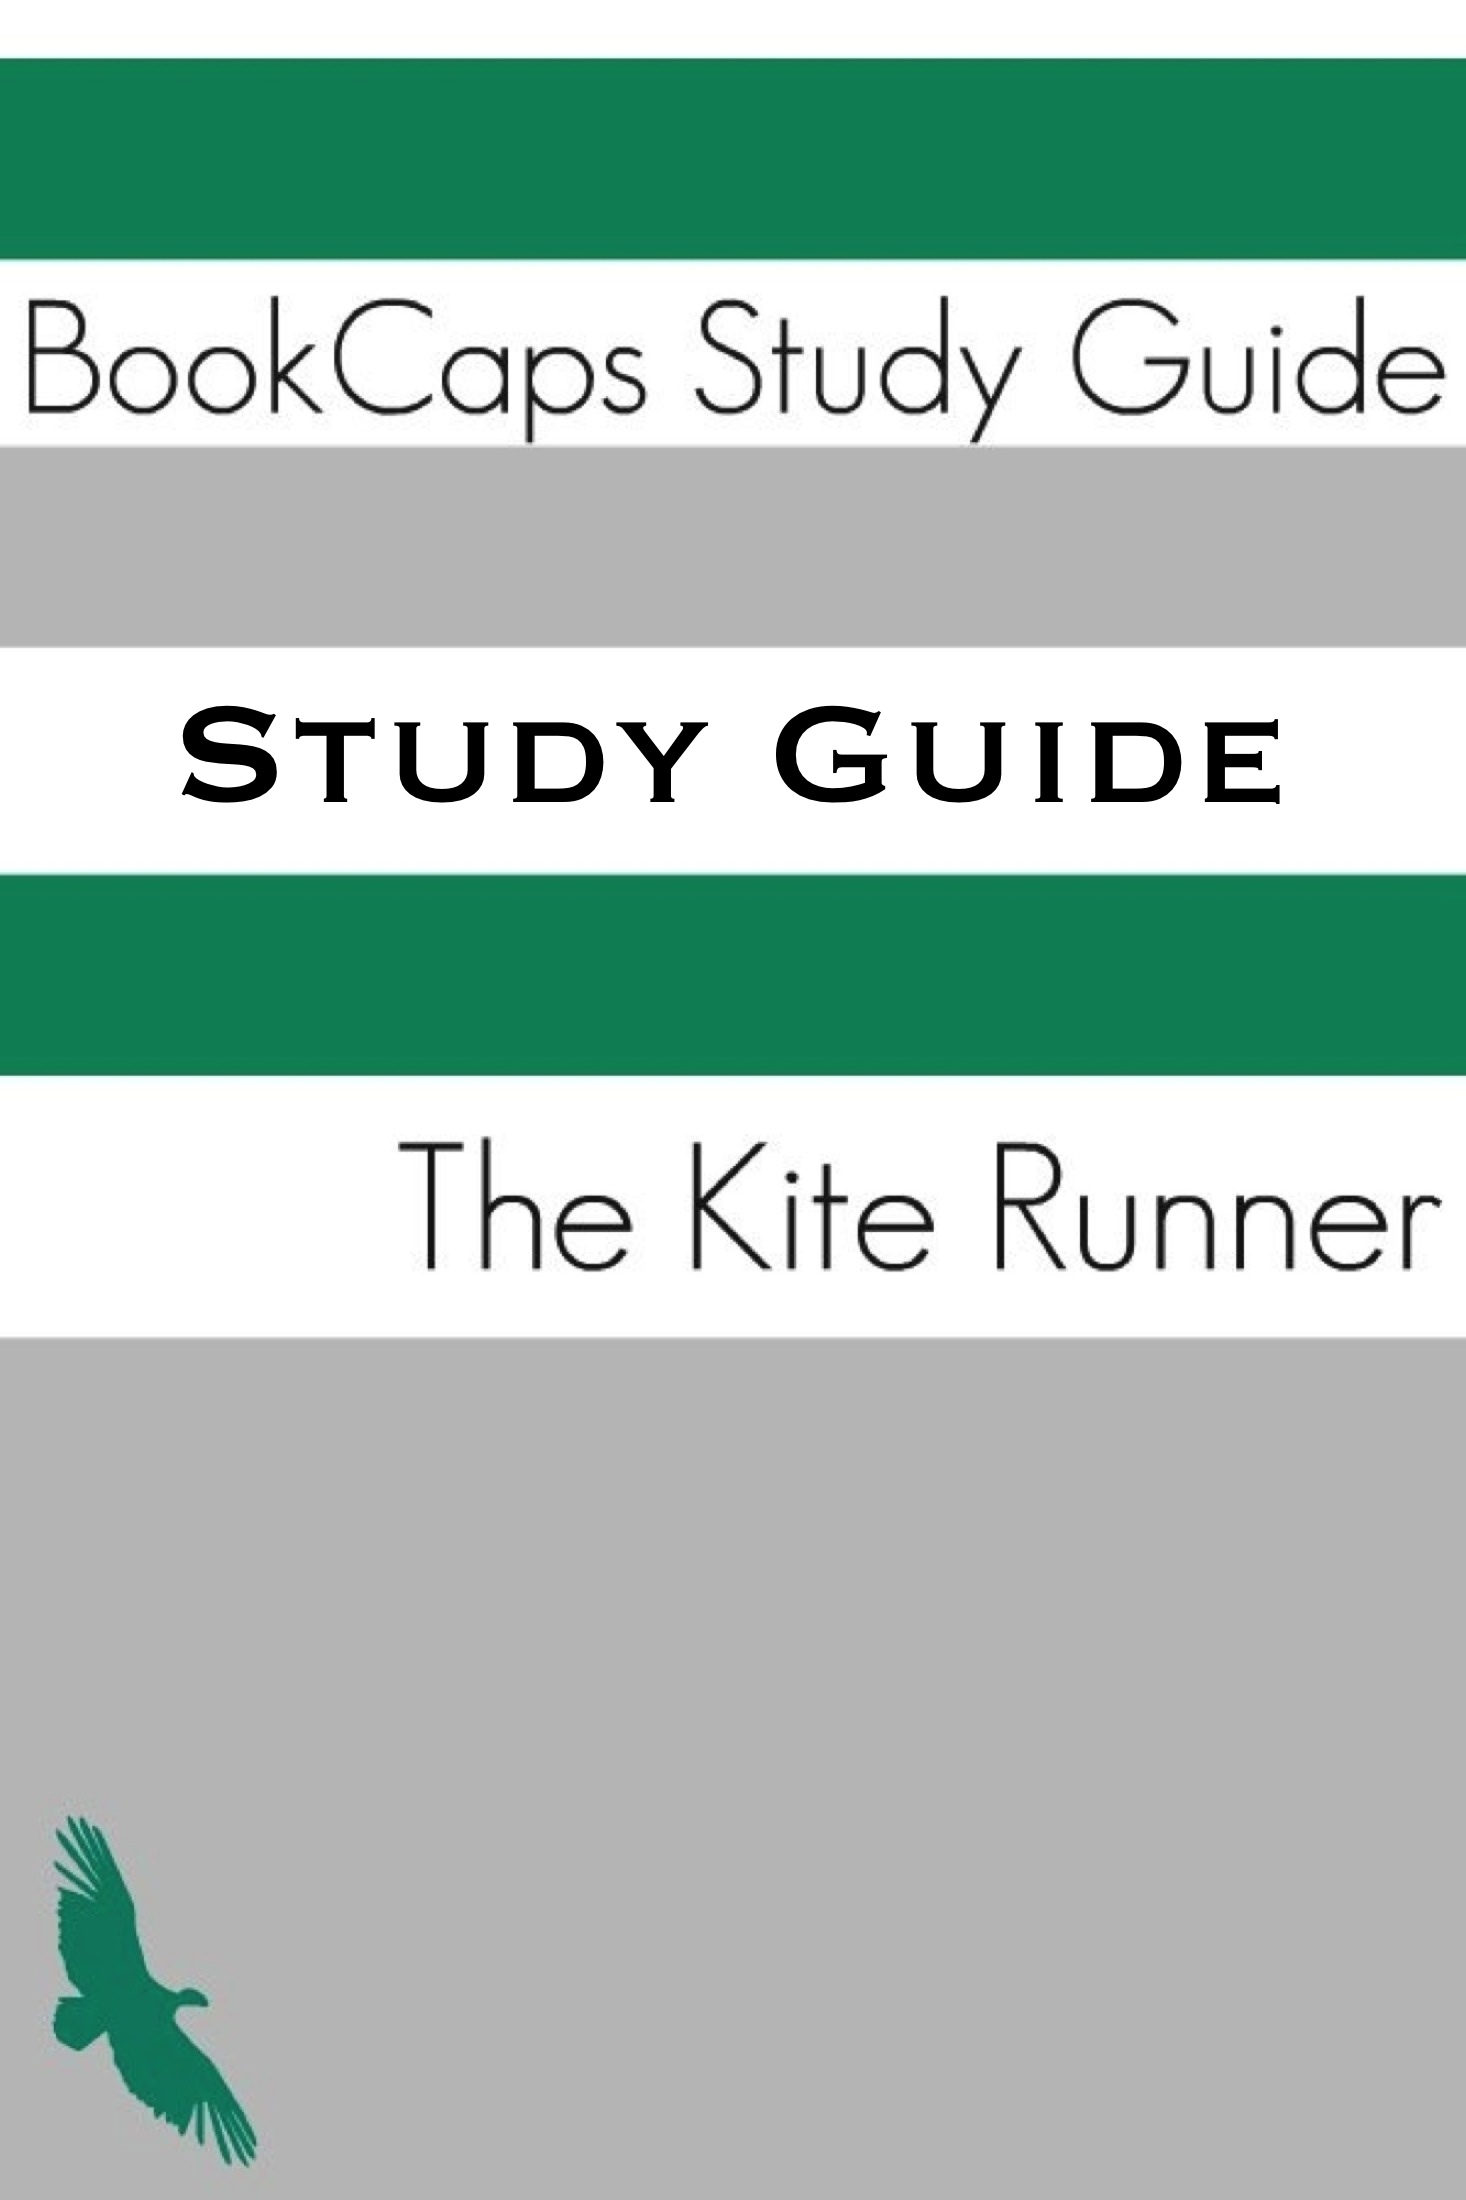 the kite runner study guide questions assignment 1 chapters 1 4 Study guide for the kite runner the kite runner is a novel by khaled hosseini the kite runner study guide contains a biography of khaled hosseini, 100 quiz questions, a list of major themes, characters, and a full summary and analysis.